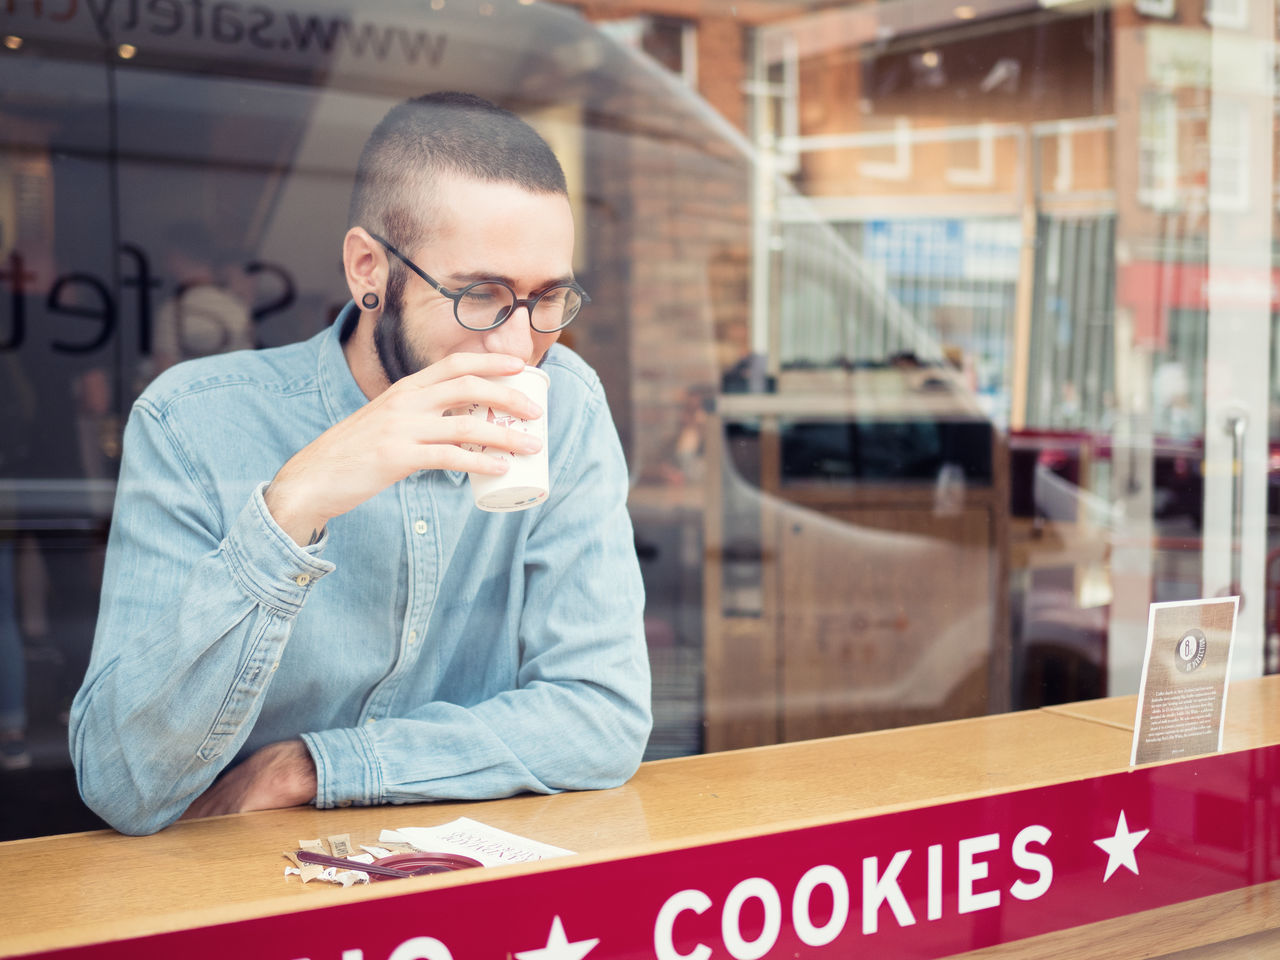 Beautiful stock photos of cookies, 20-24 Years, Blue, Button Down Shirt, Cafe